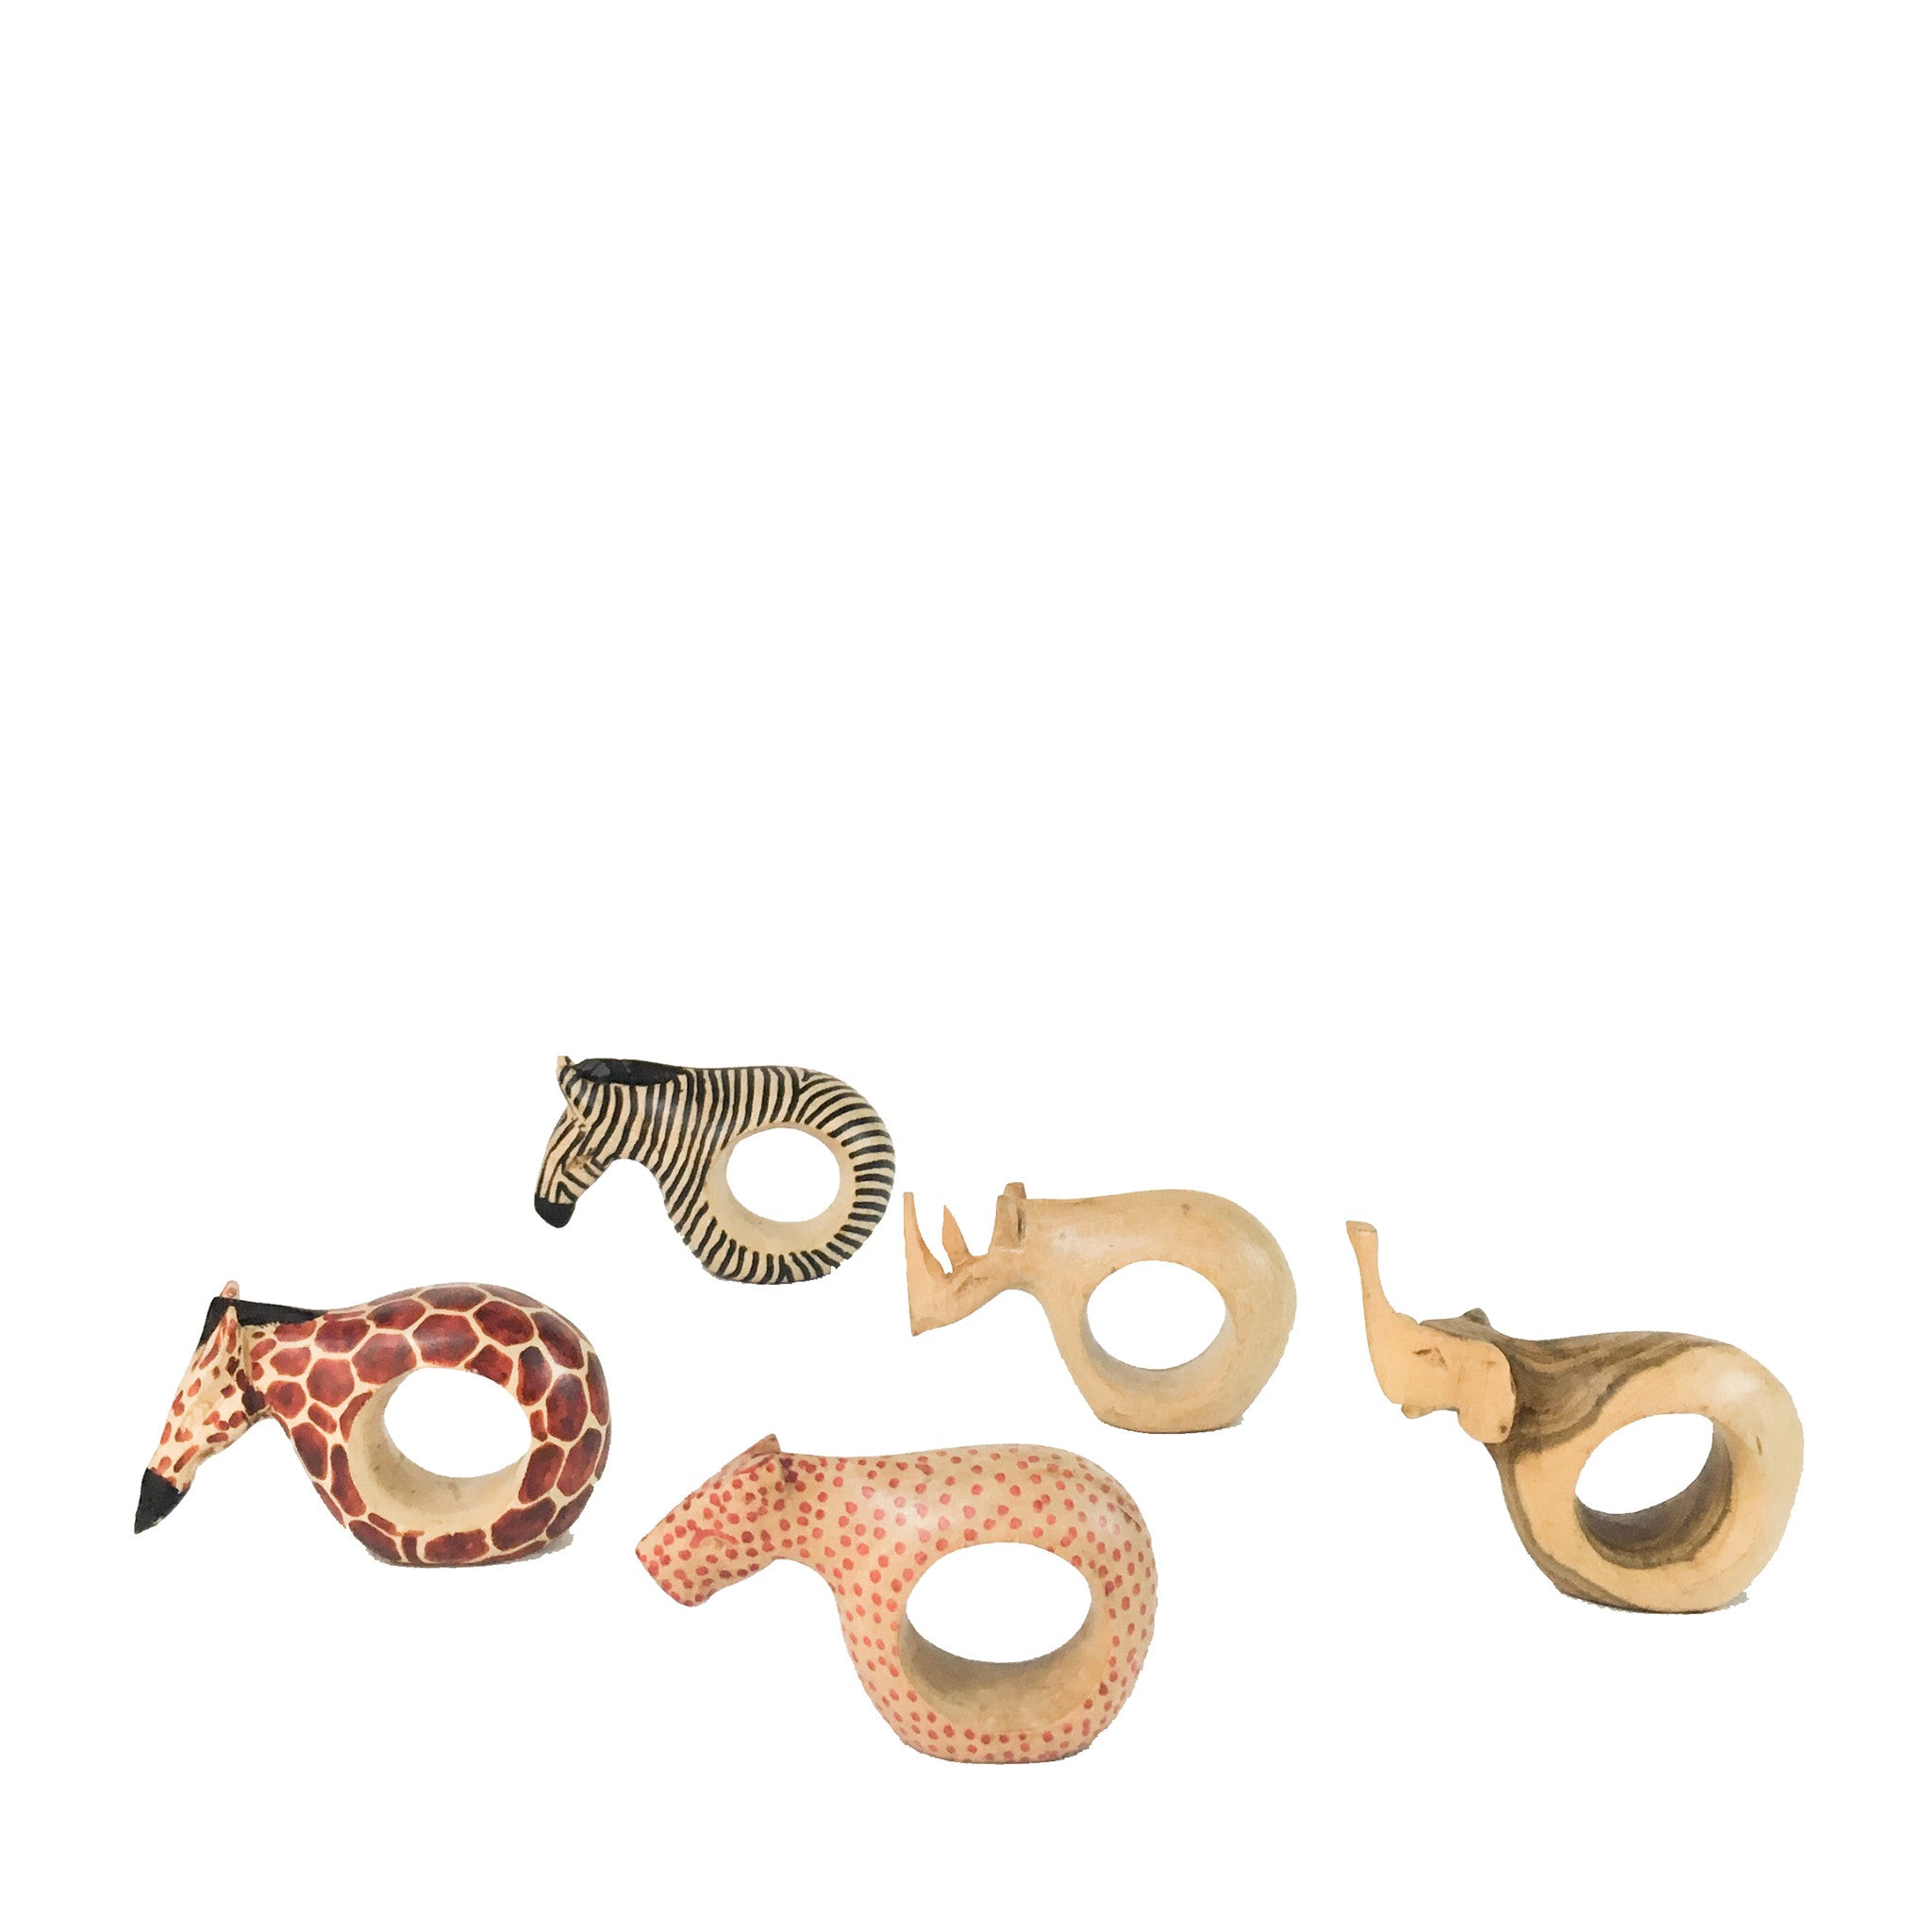 SAFARI NAPKIN RINGS - bunglo by shay spaniola - 1